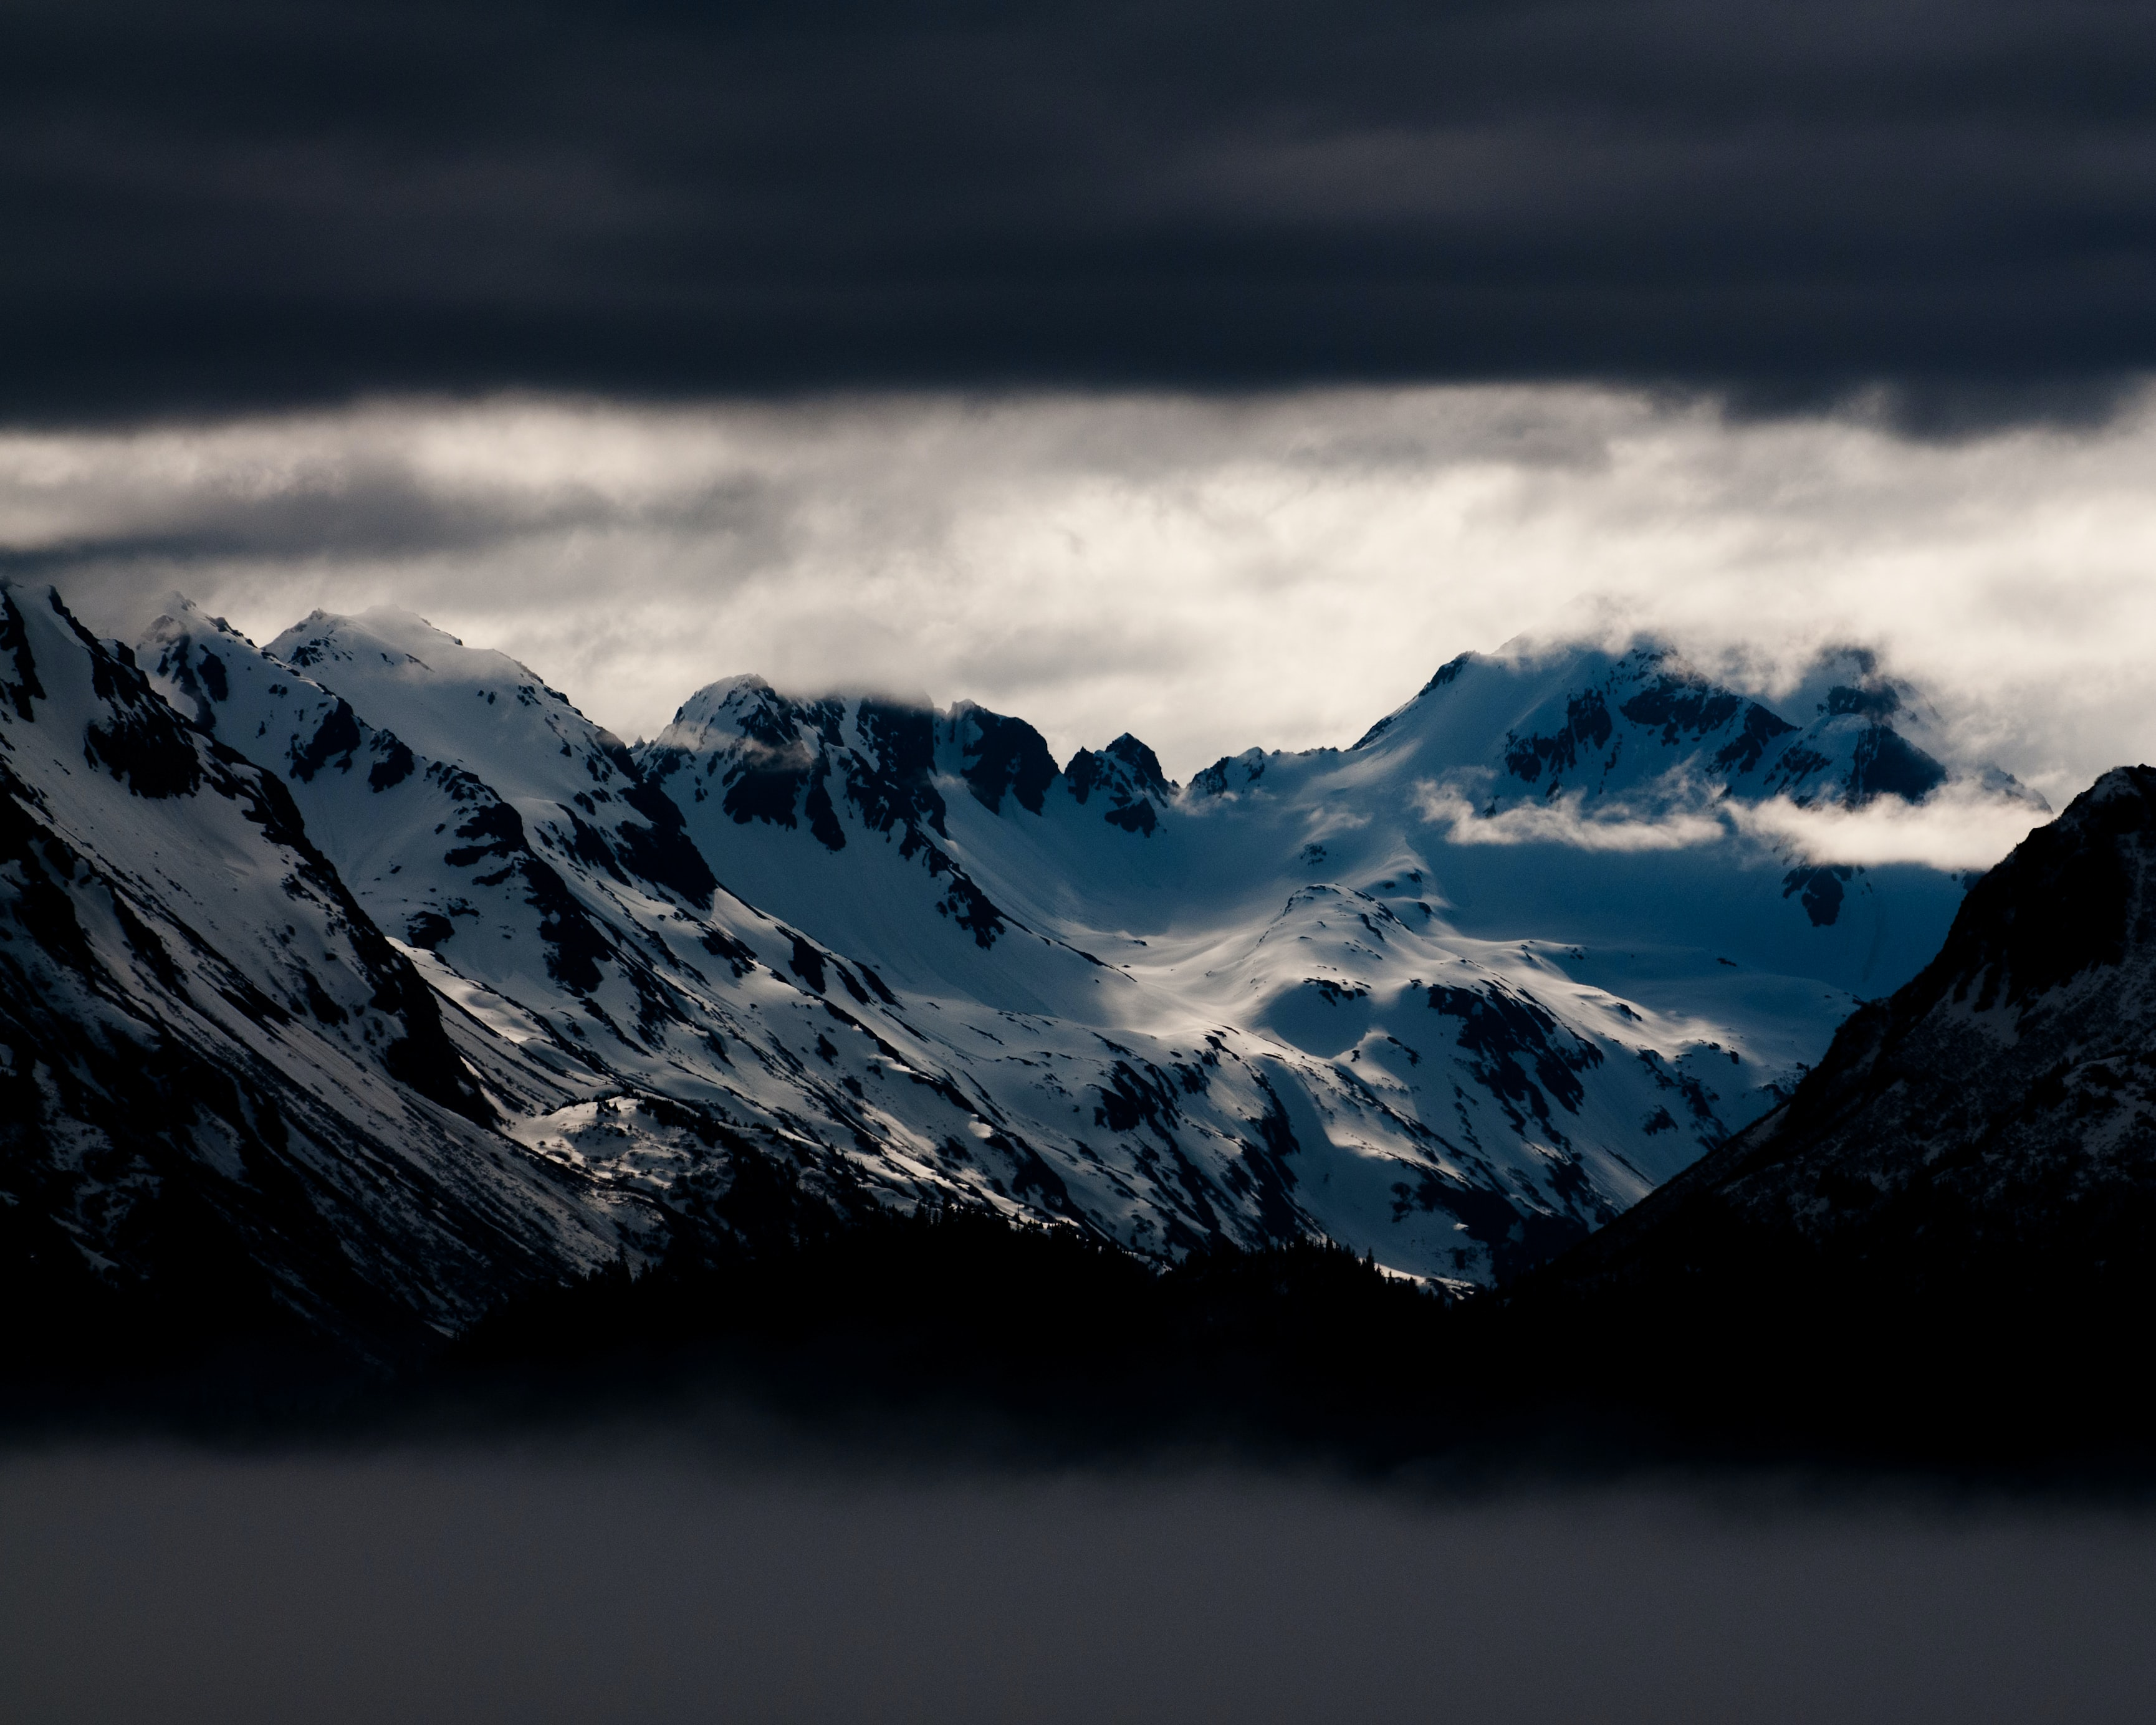 snow covered mountains under white clouds at daytime